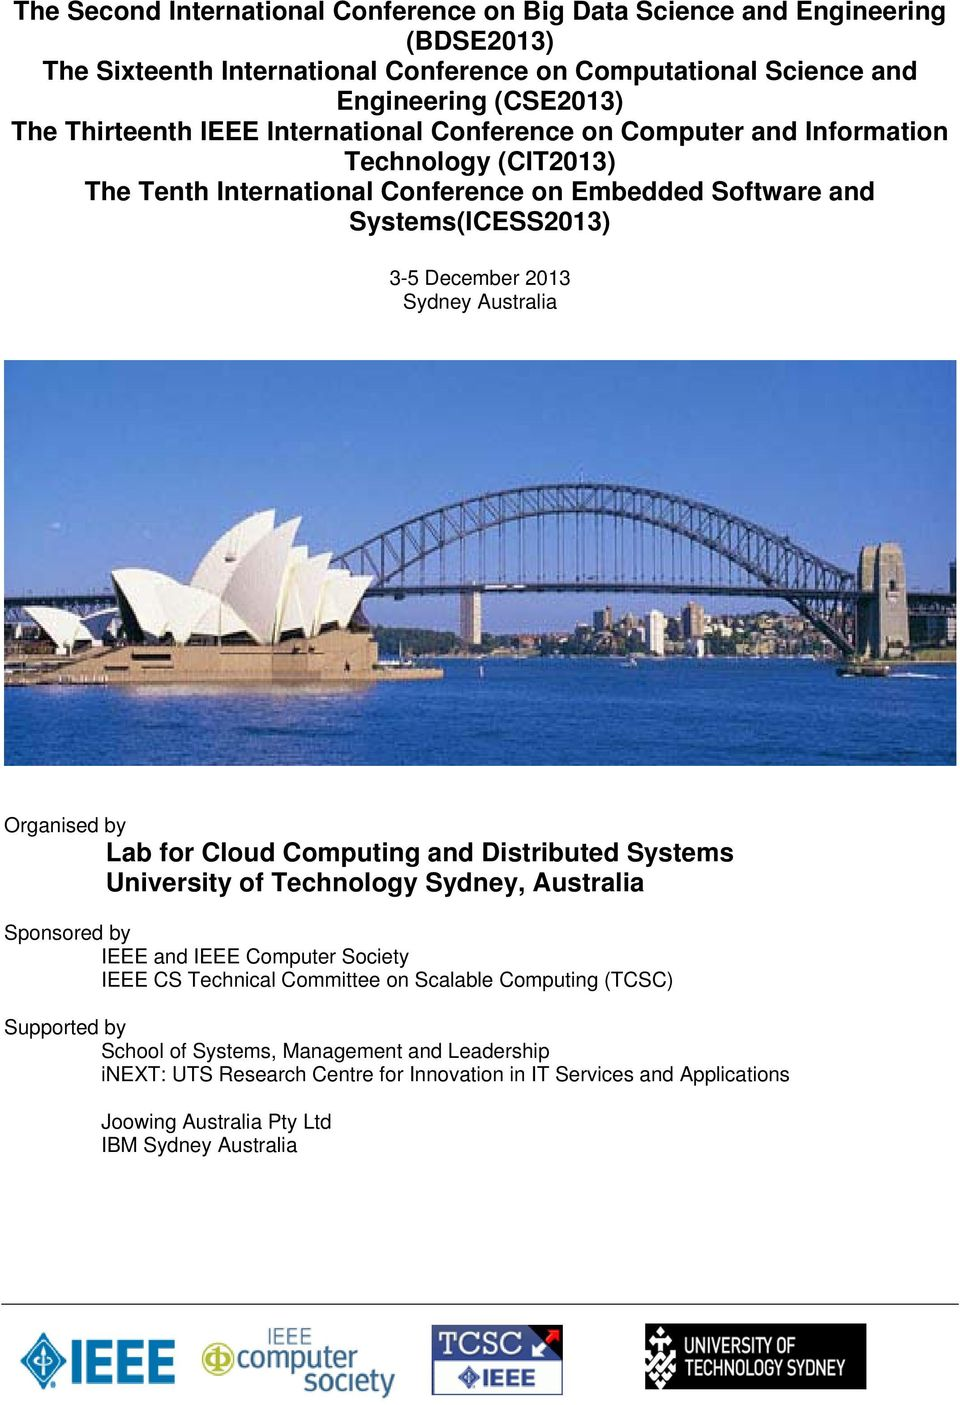 Australia Organised by Lab for Cloud Computing and Distributed Systems University of Technology Sydney, Australia Sponsored by IEEE and IEEE Computer Society IEEE CS Technical Committee on